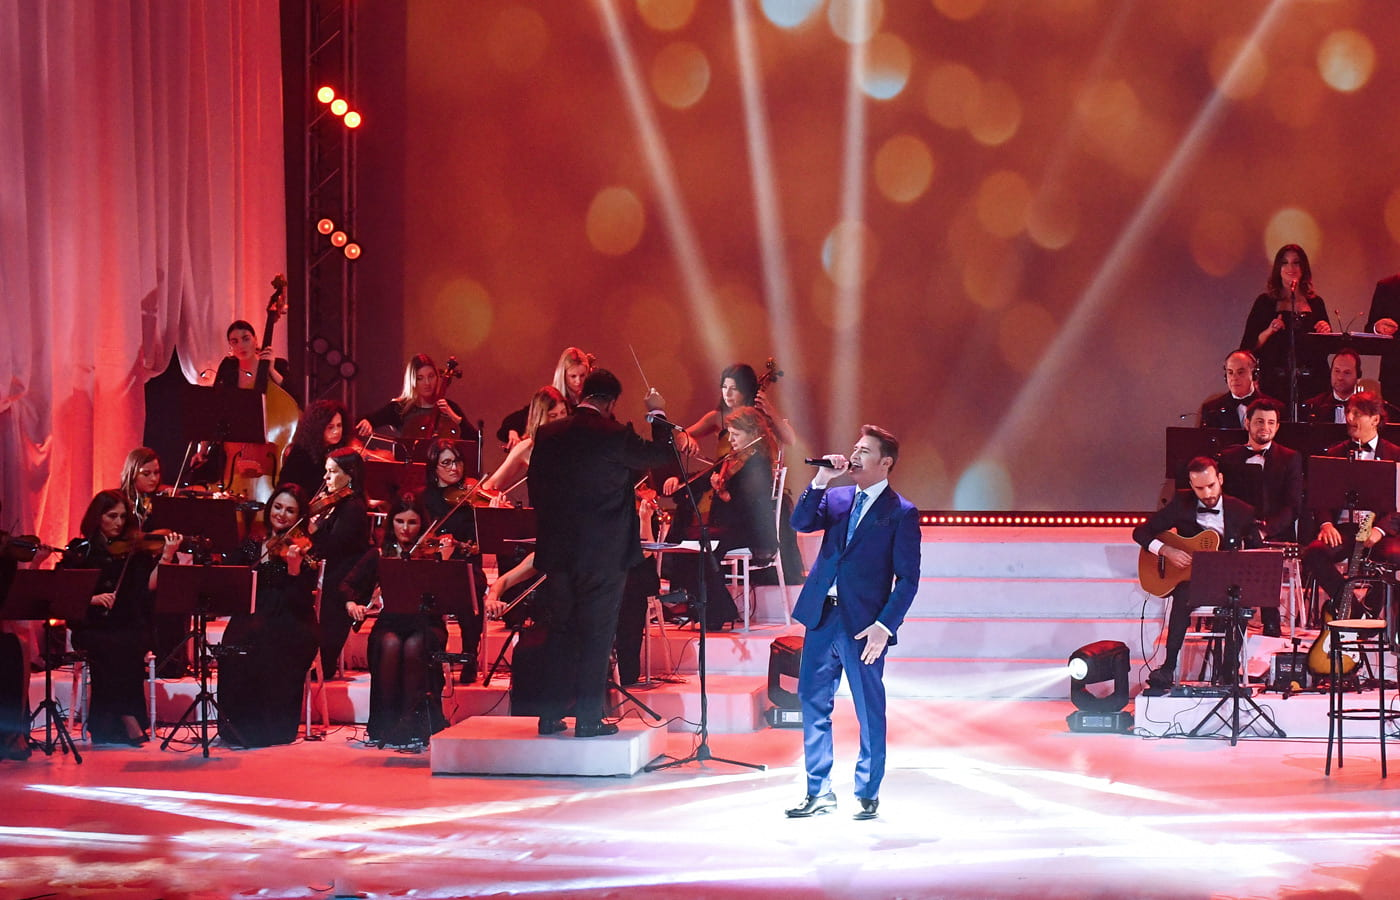 Pasquale Esposito singing on a glittering red stage.